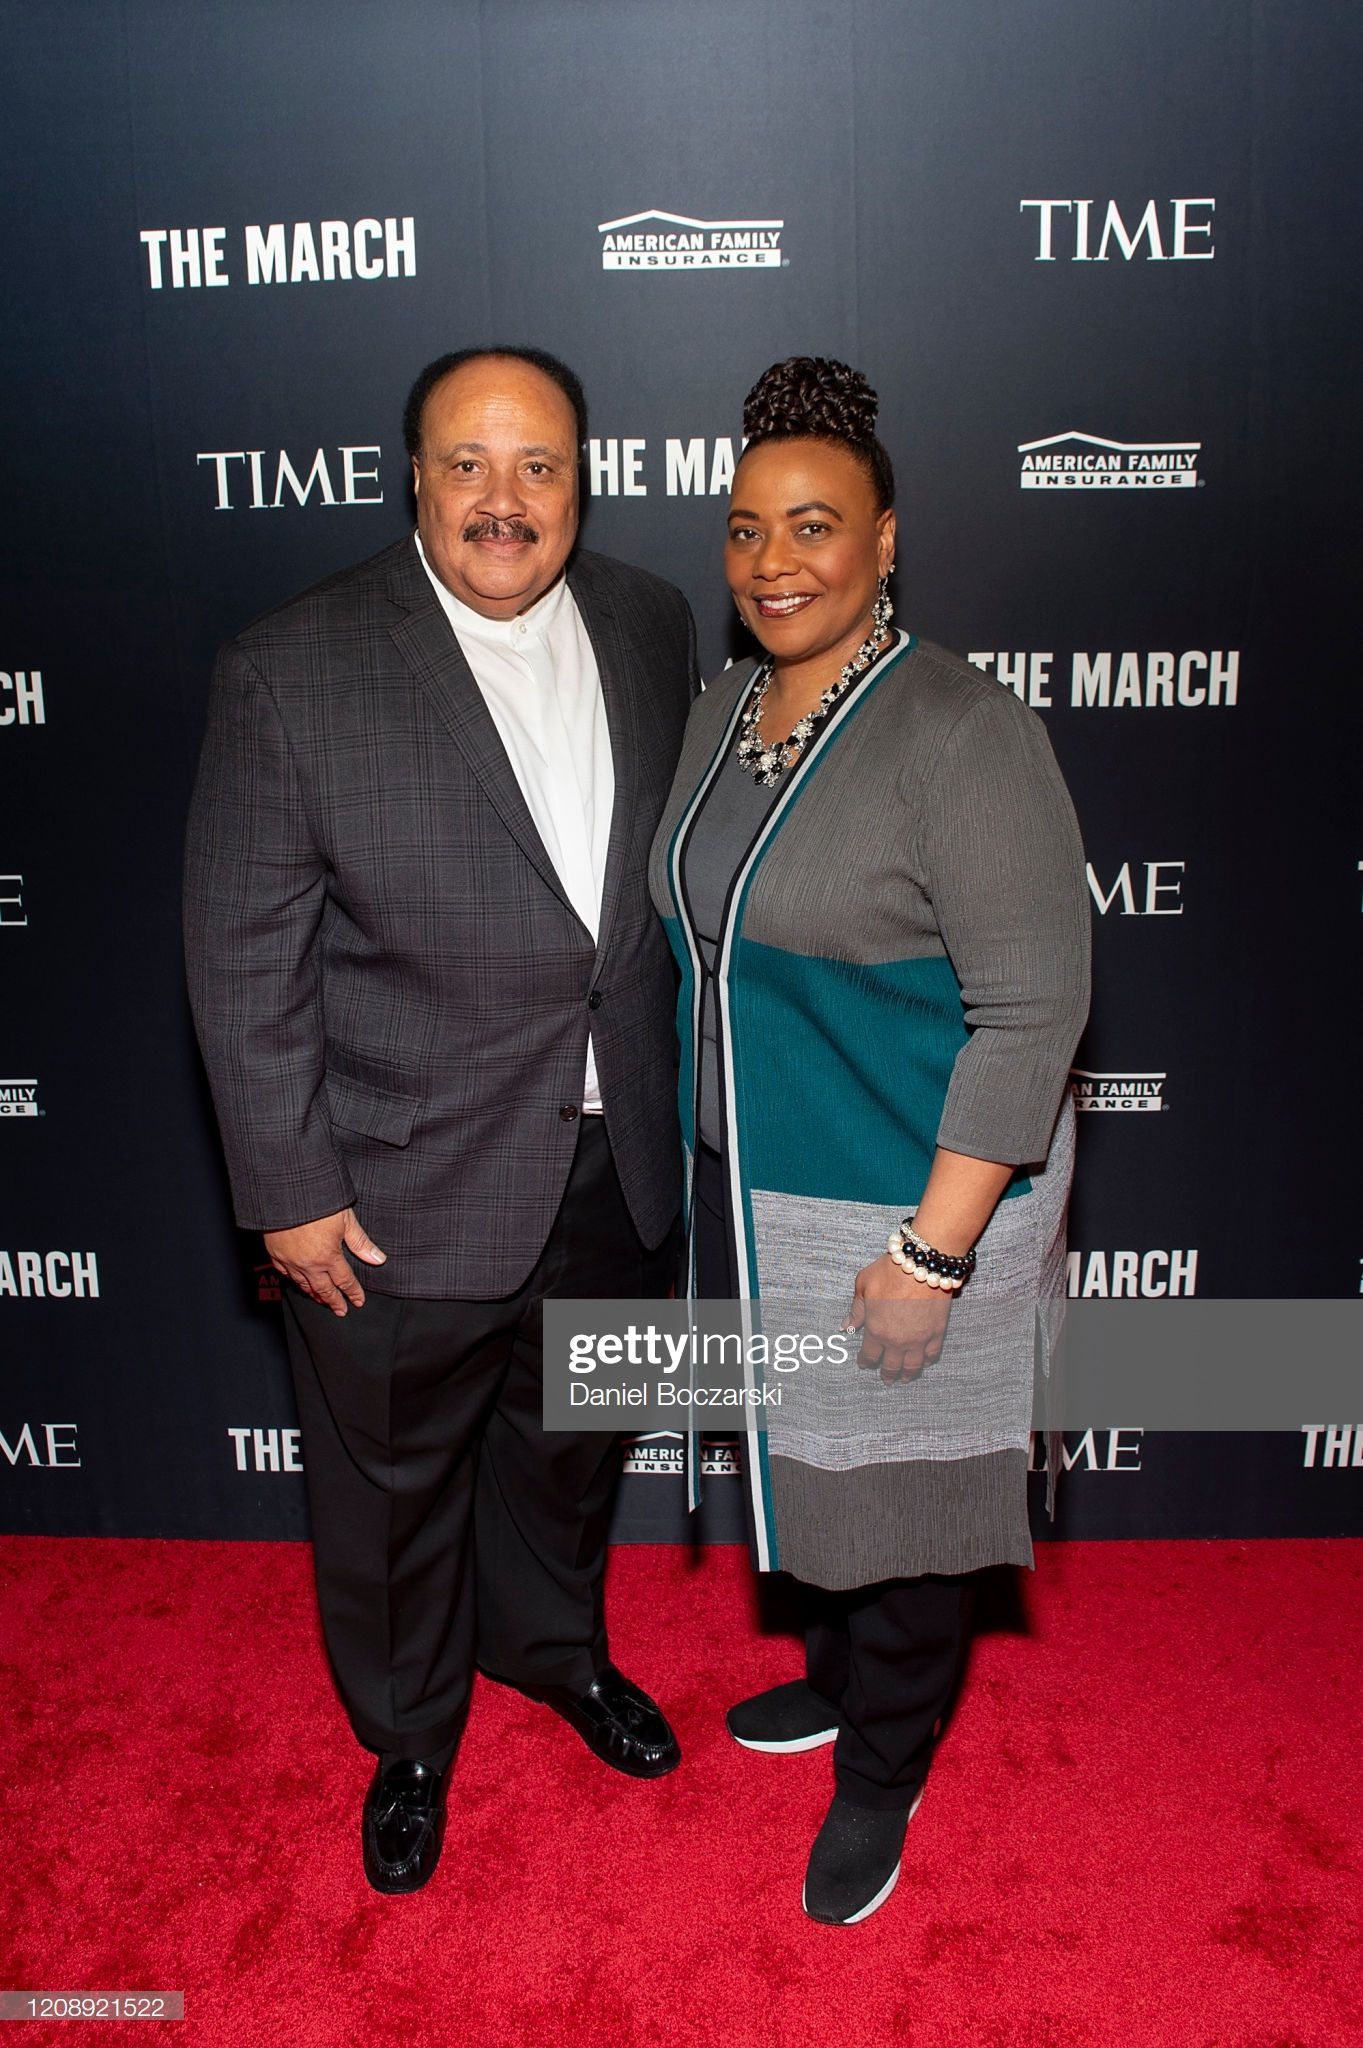 Son of Dr. Martin Luther King Jr., Martin Luther King III ...